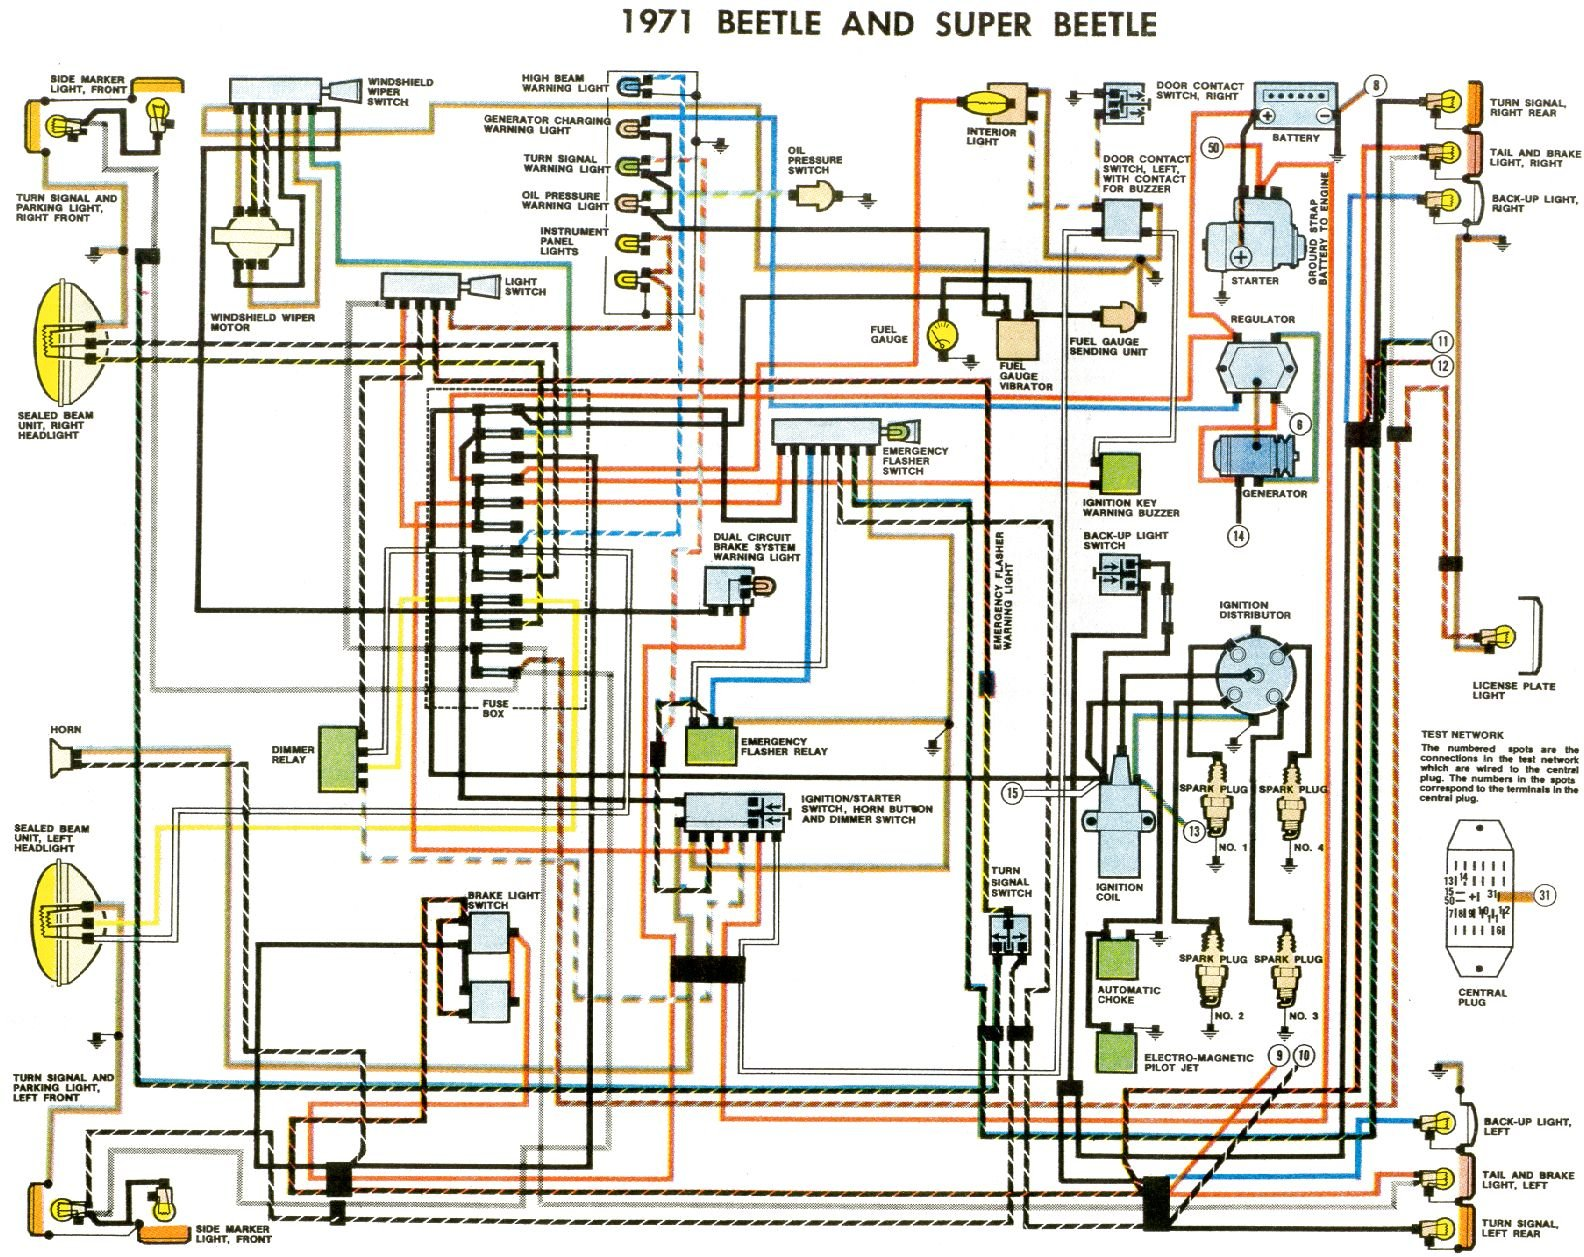 1971 VW Beetle Wiring Diagram on 71 beetle wiring diagram